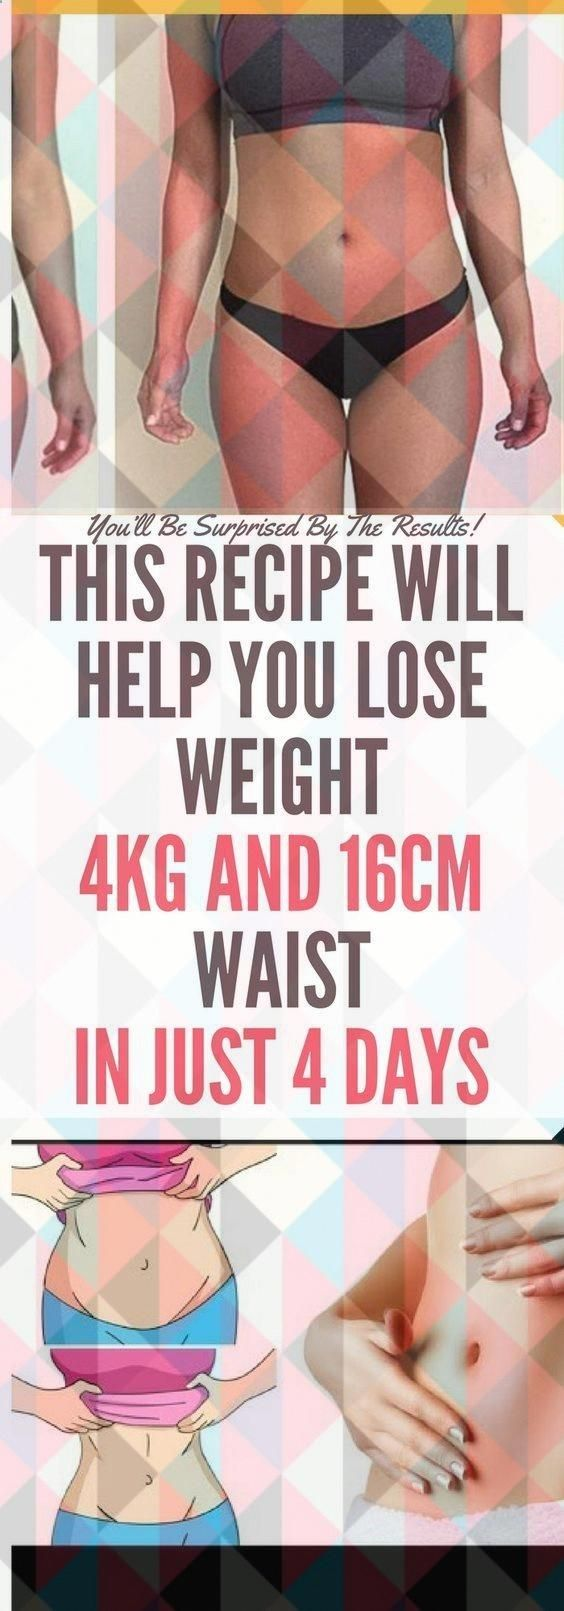 Don�t Consume It More Than 4 Days! This Mixture Will Help You Lose 4kg and 16cm Waist in Just 4 Days...